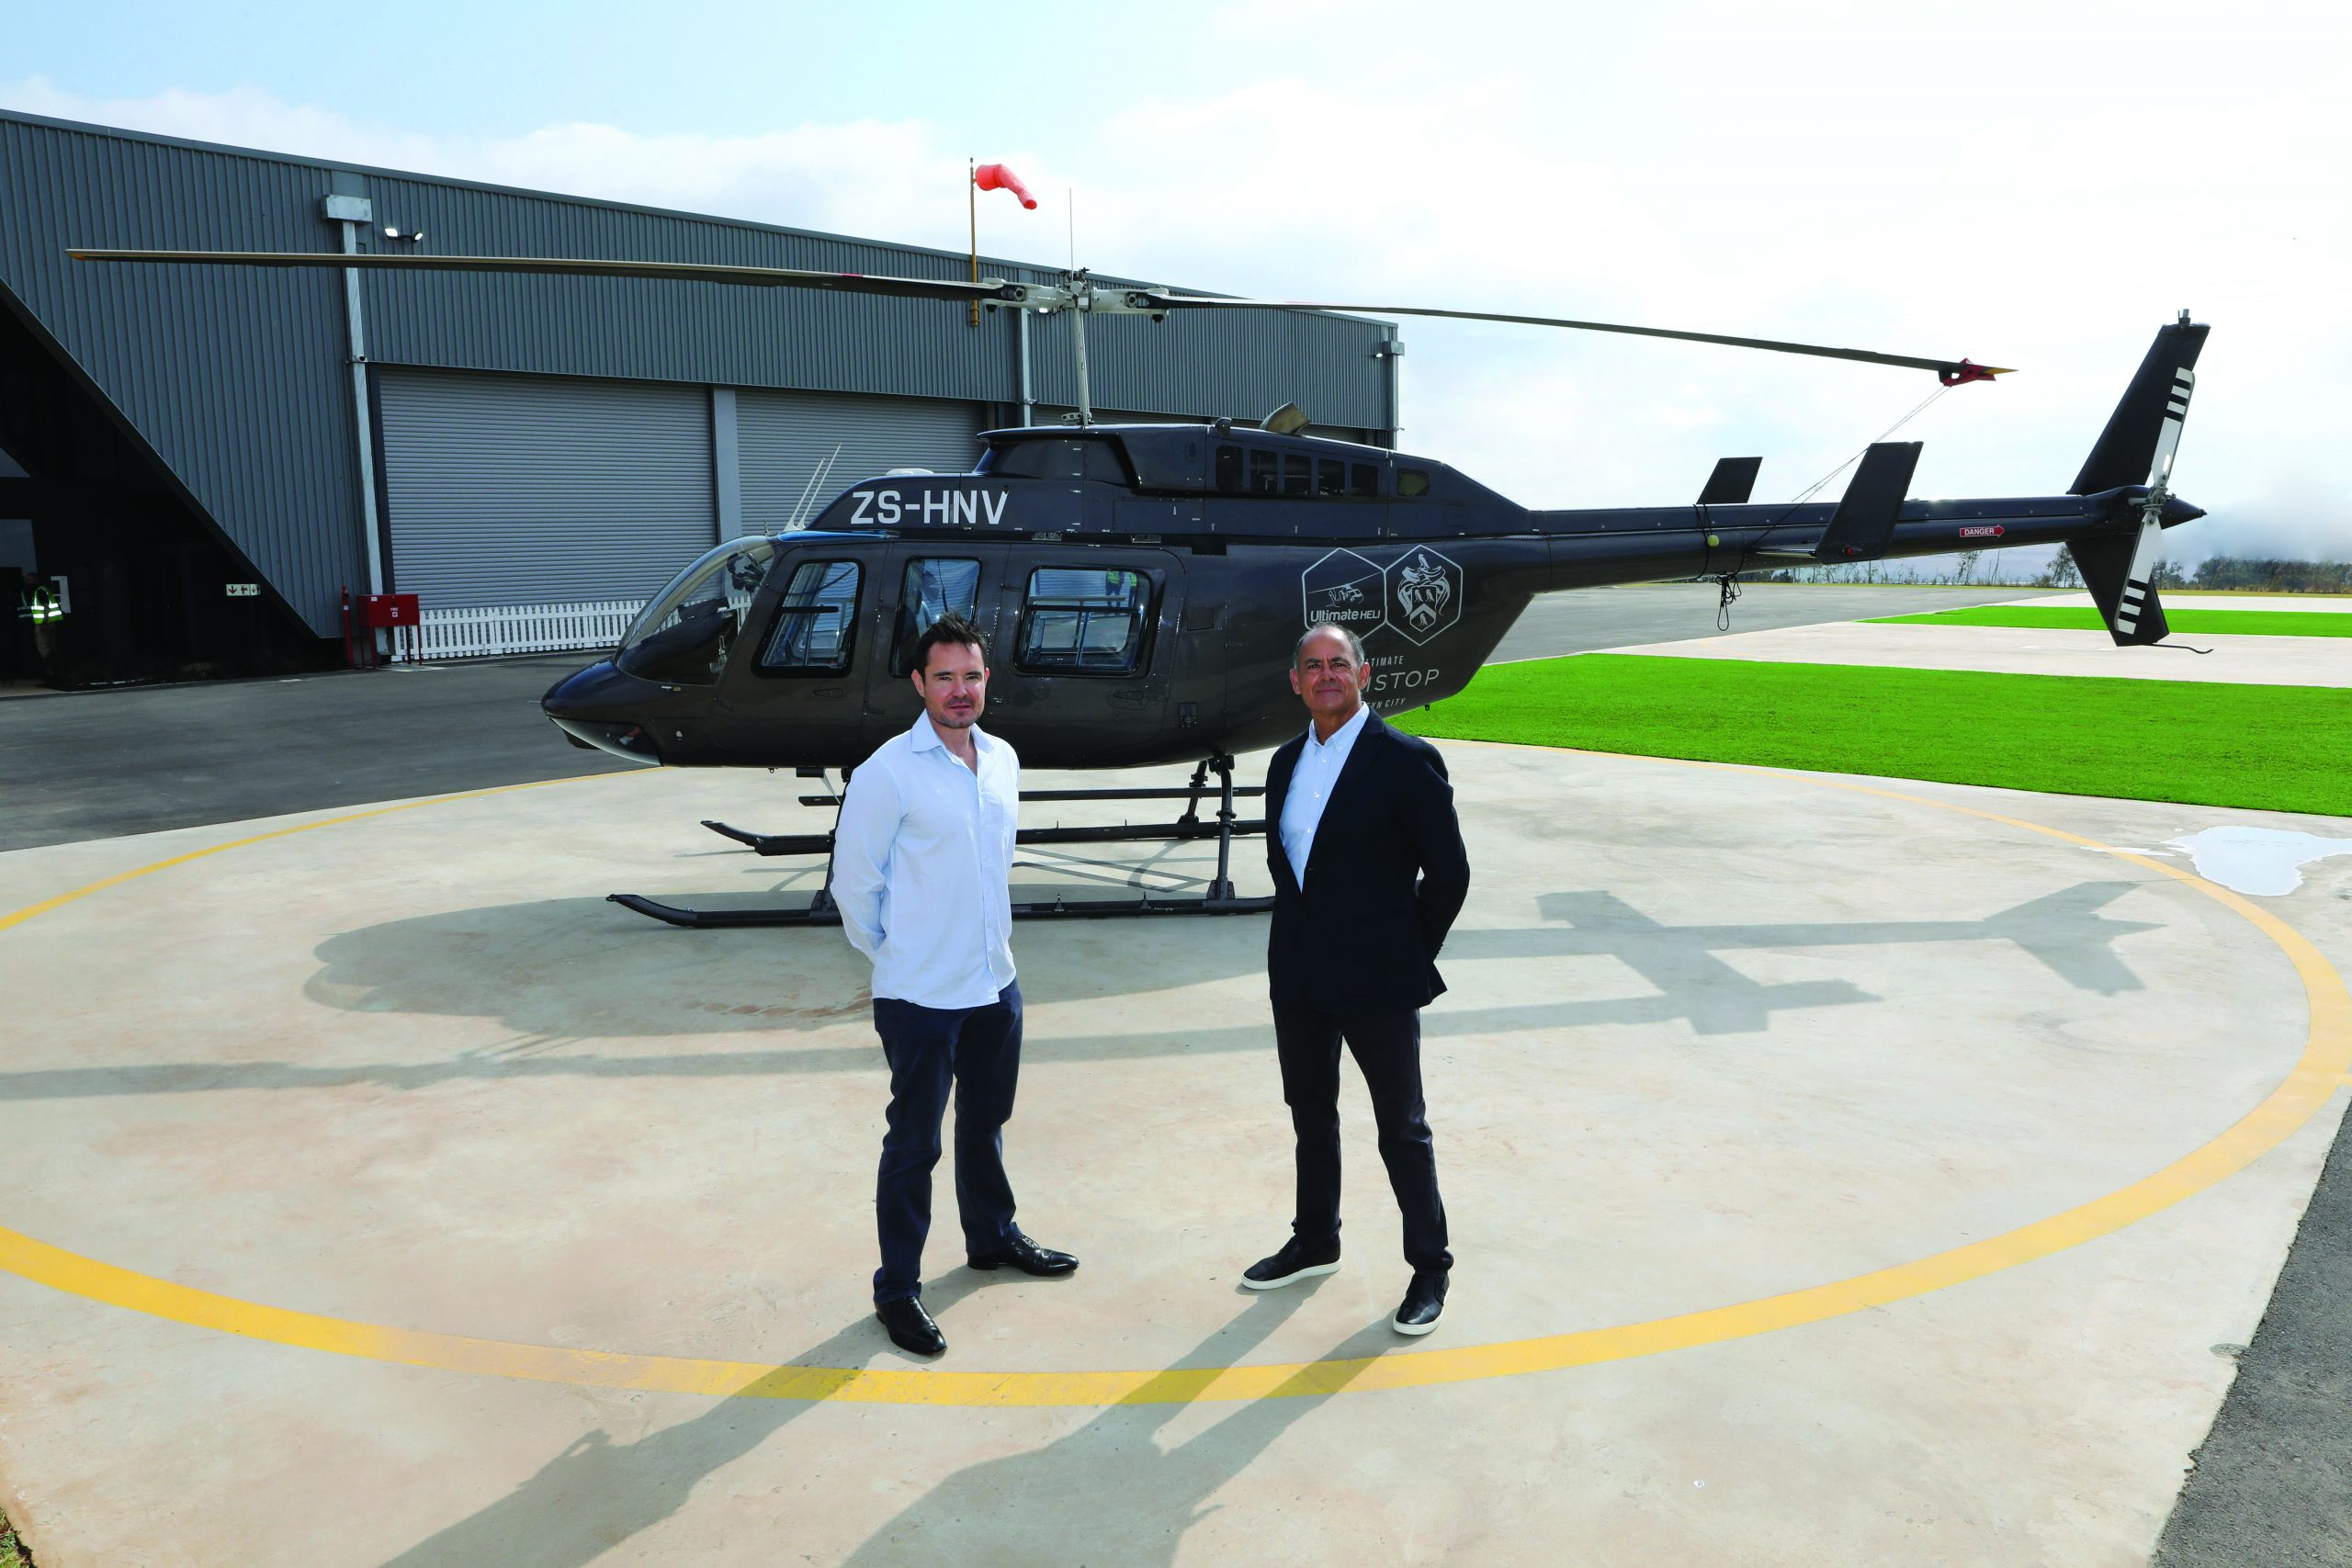 Steyn City's Ultimate Helistop a first for SA residential developments